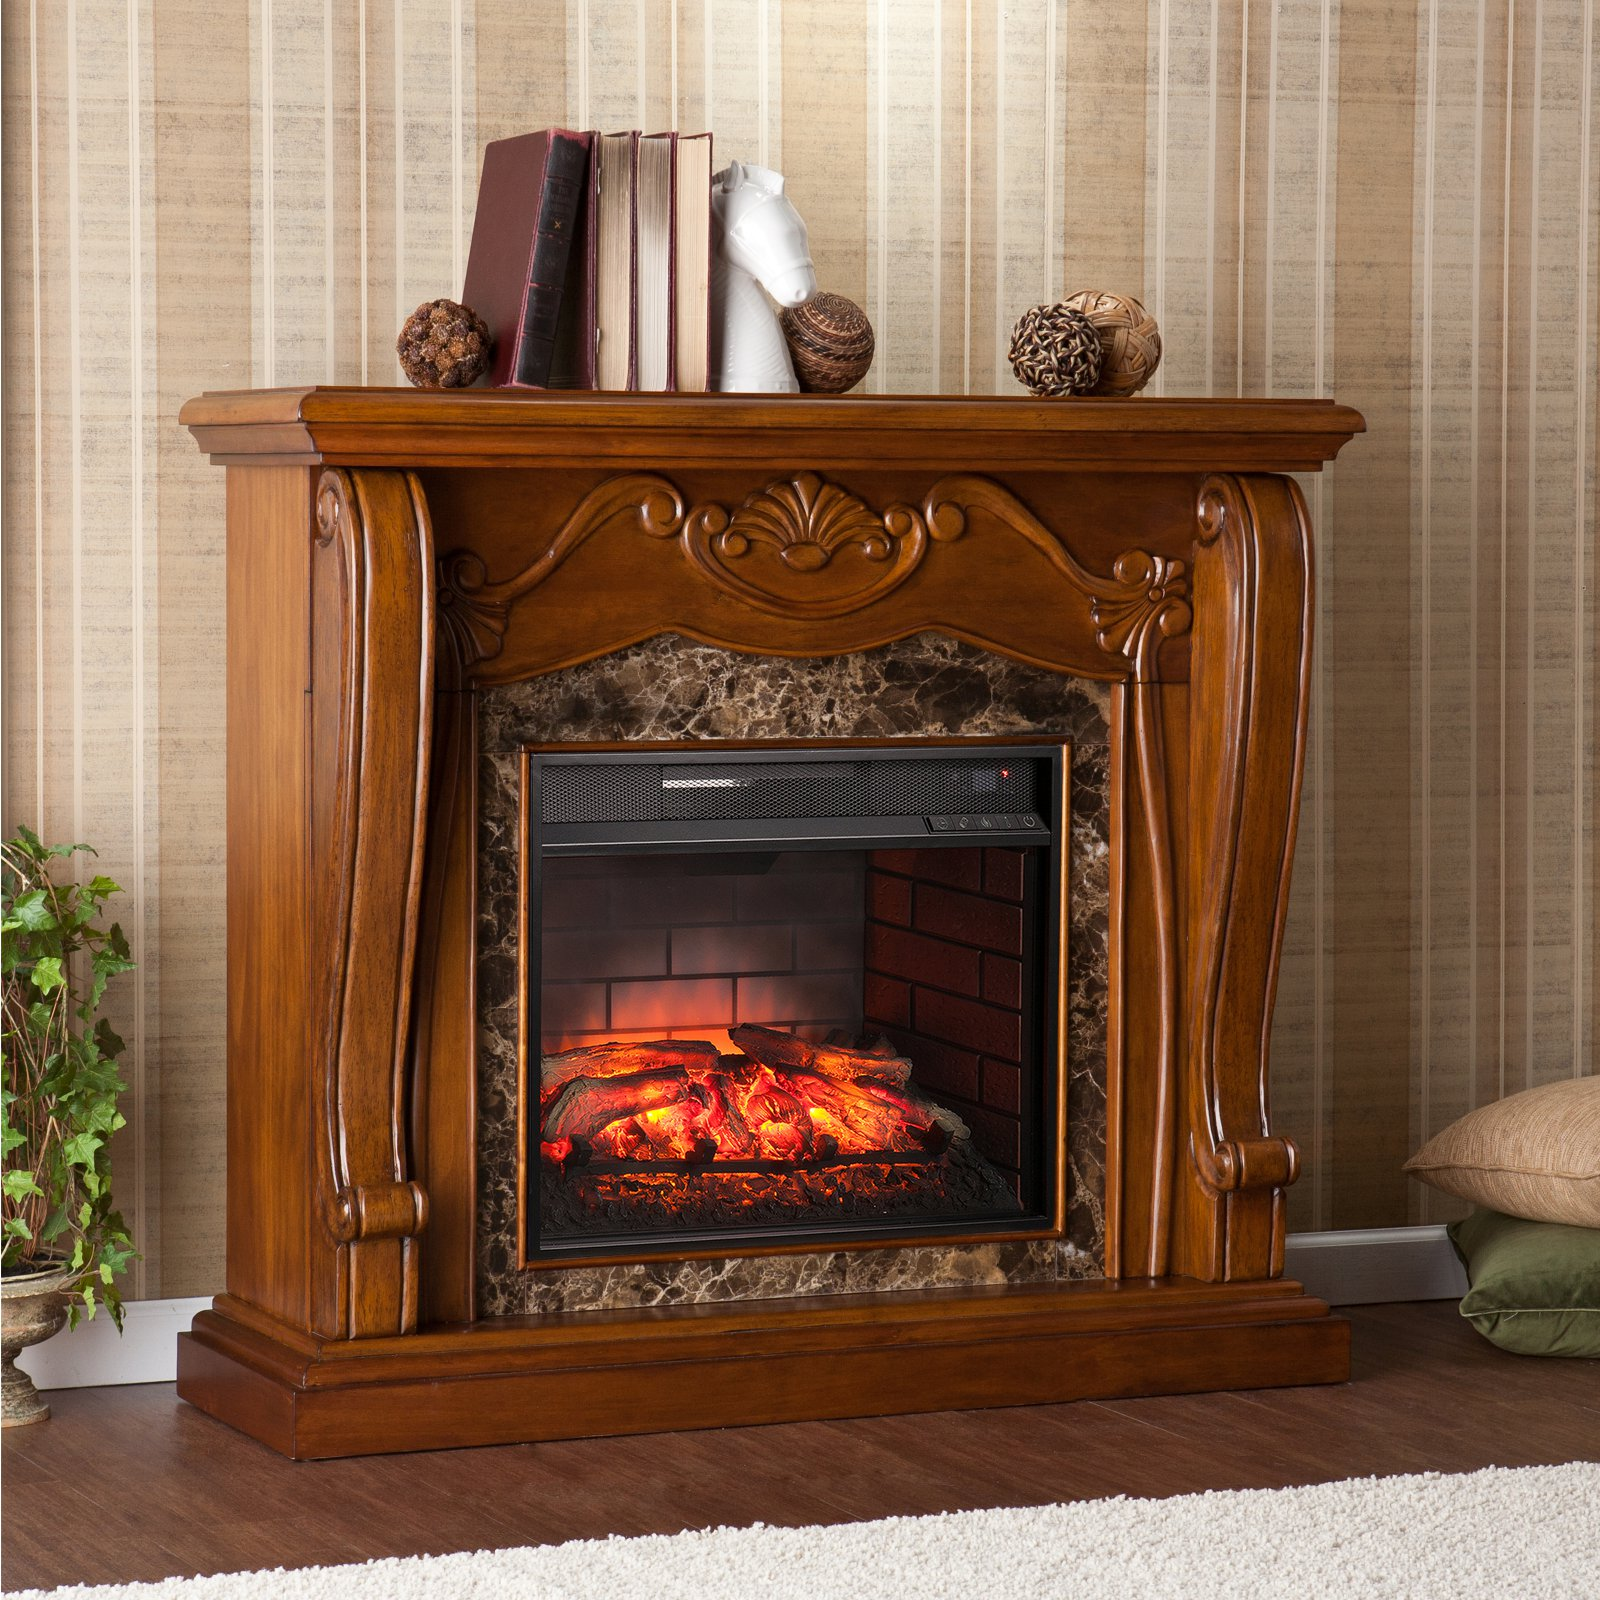 Southern Enterprises Cardona Freestanding Infrared Electric Fireplace